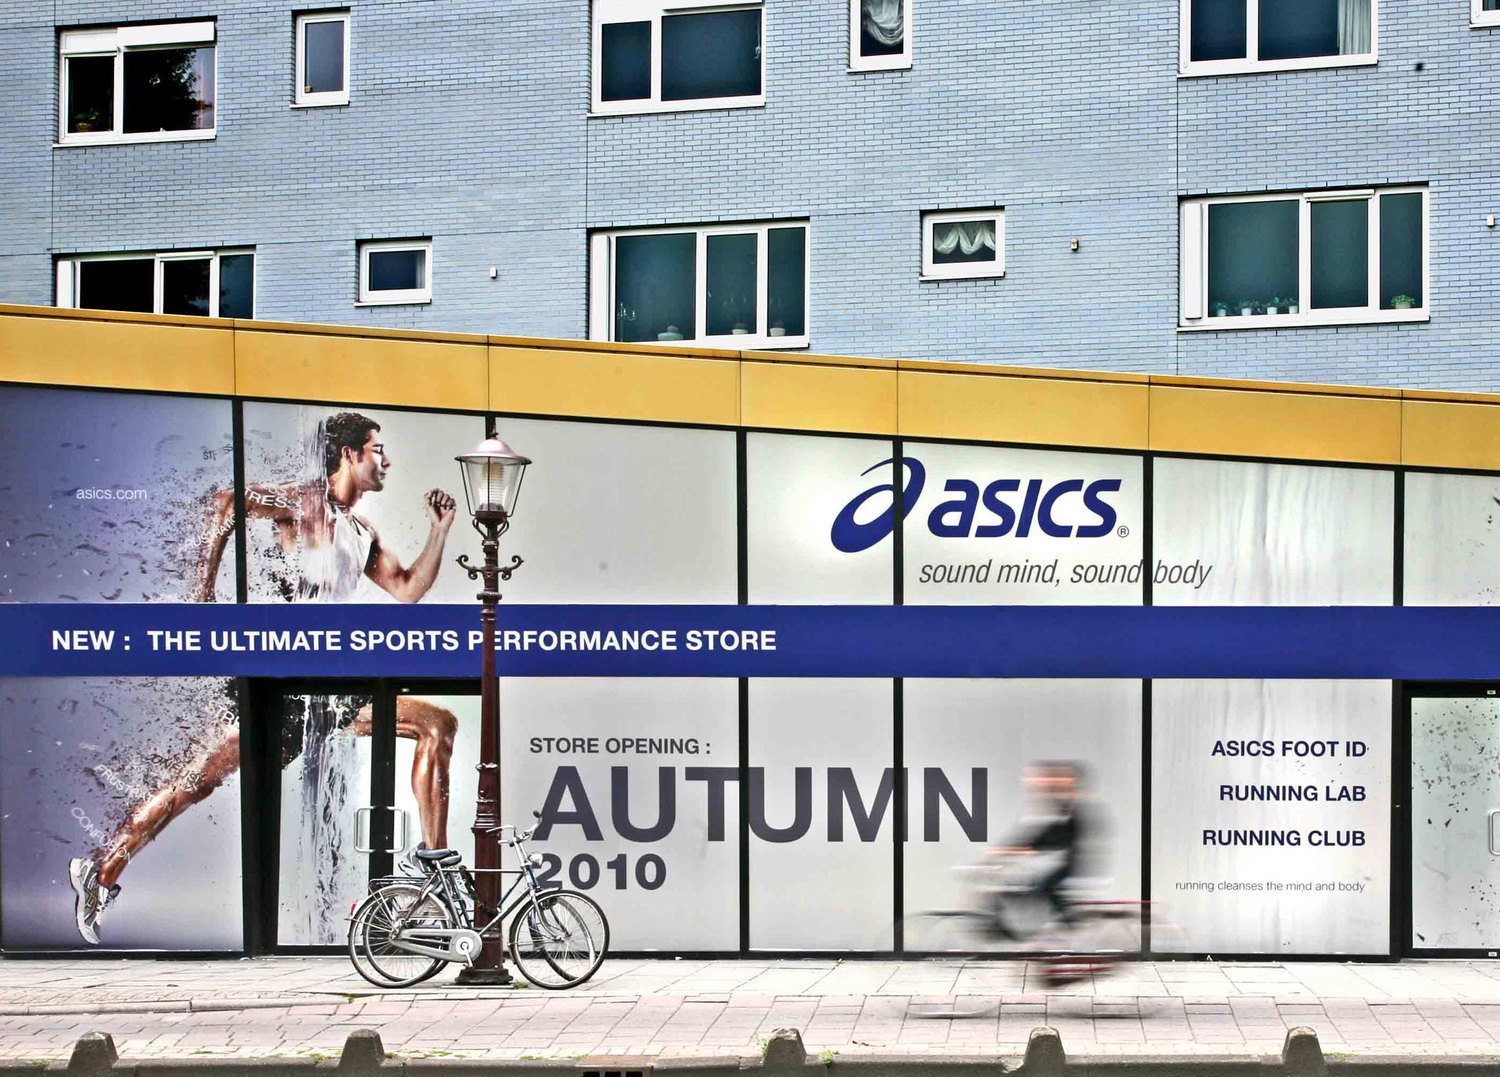 Large-format exterior hoarding graphics at ASICS' Amsterdam flagship store